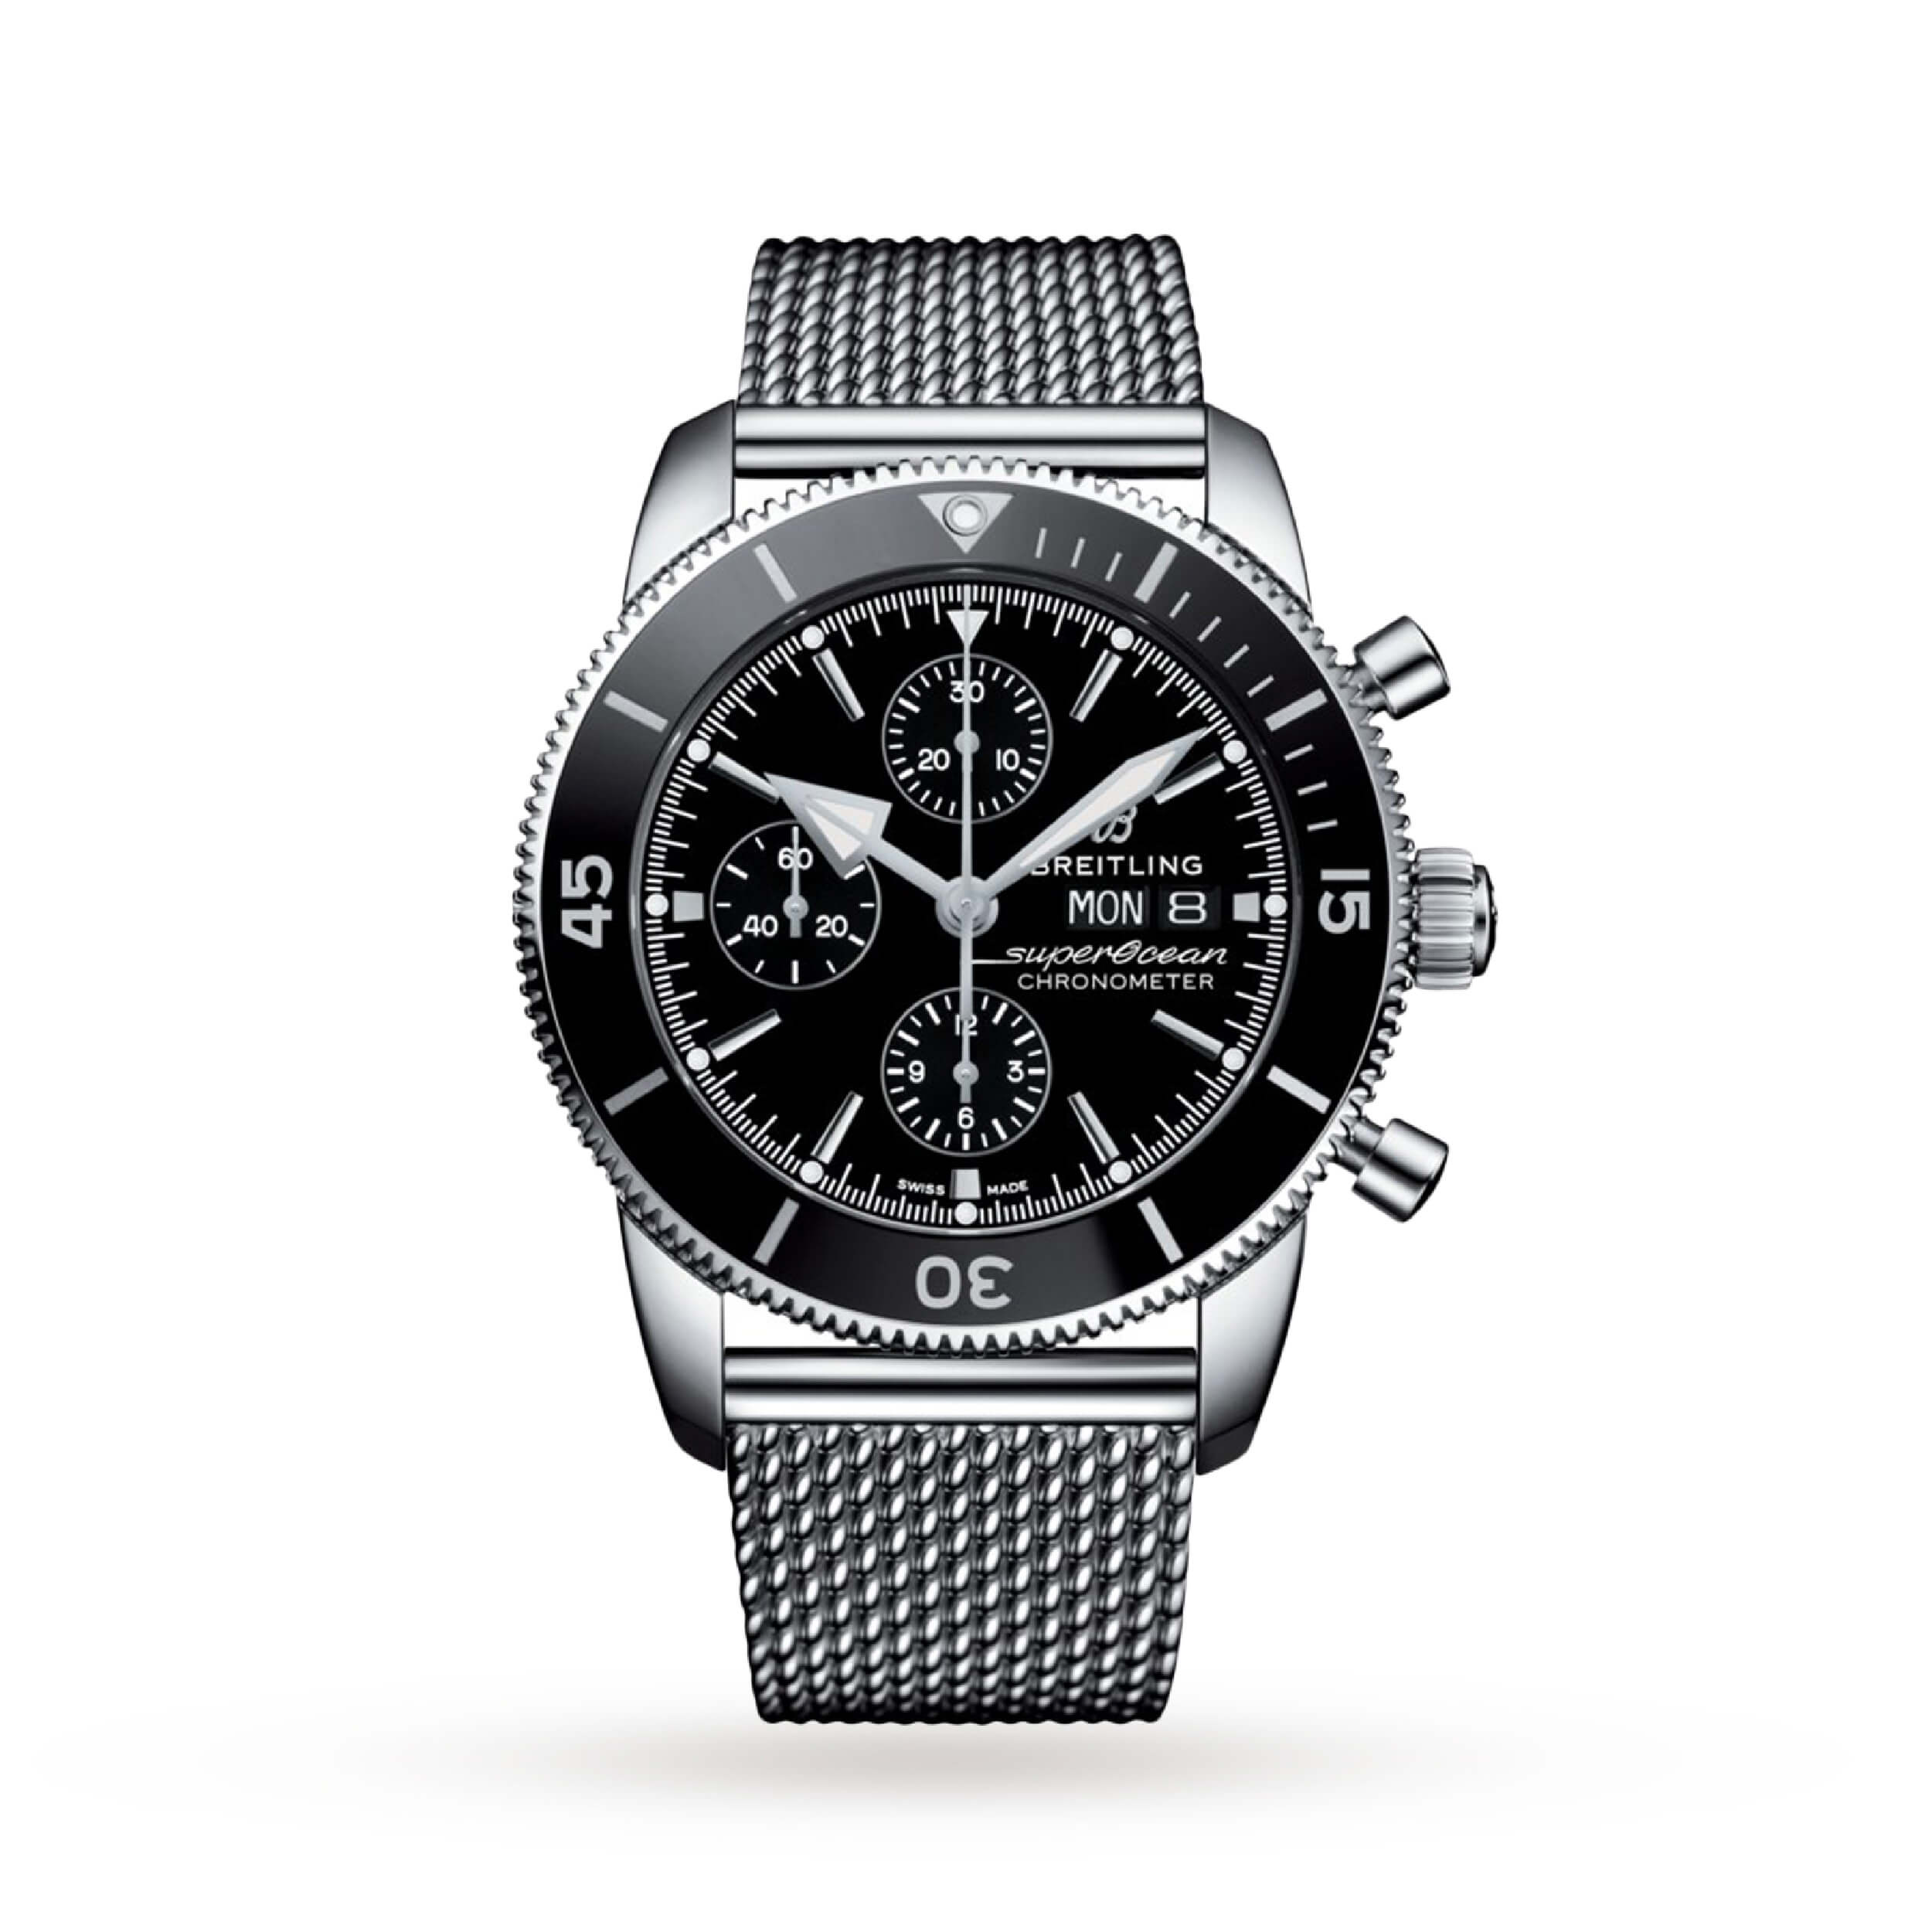 Breitling Superocean Héritage II Chronograph | Best Luxury Chronograph Watches 2021